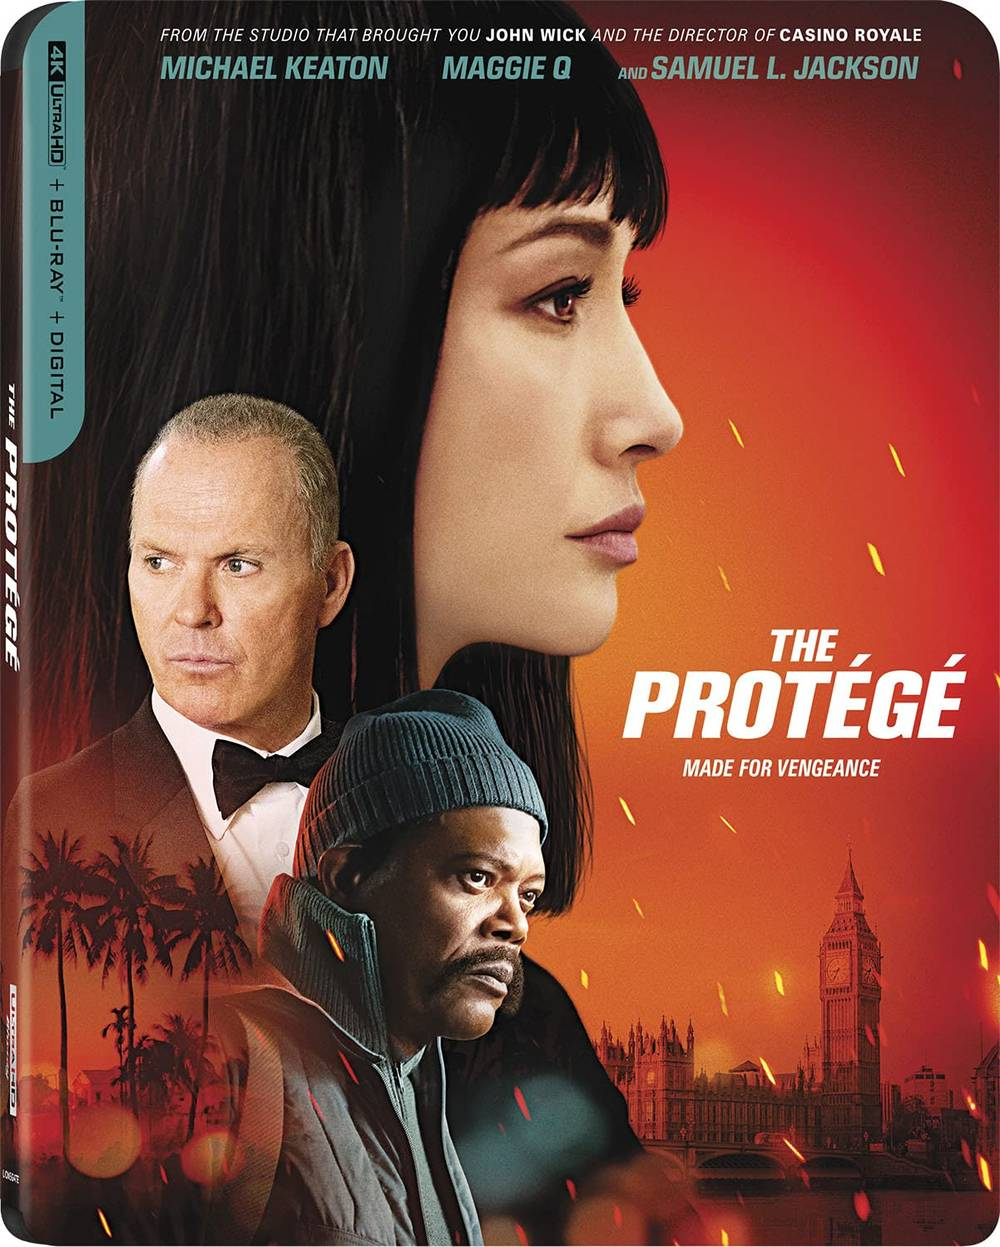 The Protege [Movie] - The Protege [4K]